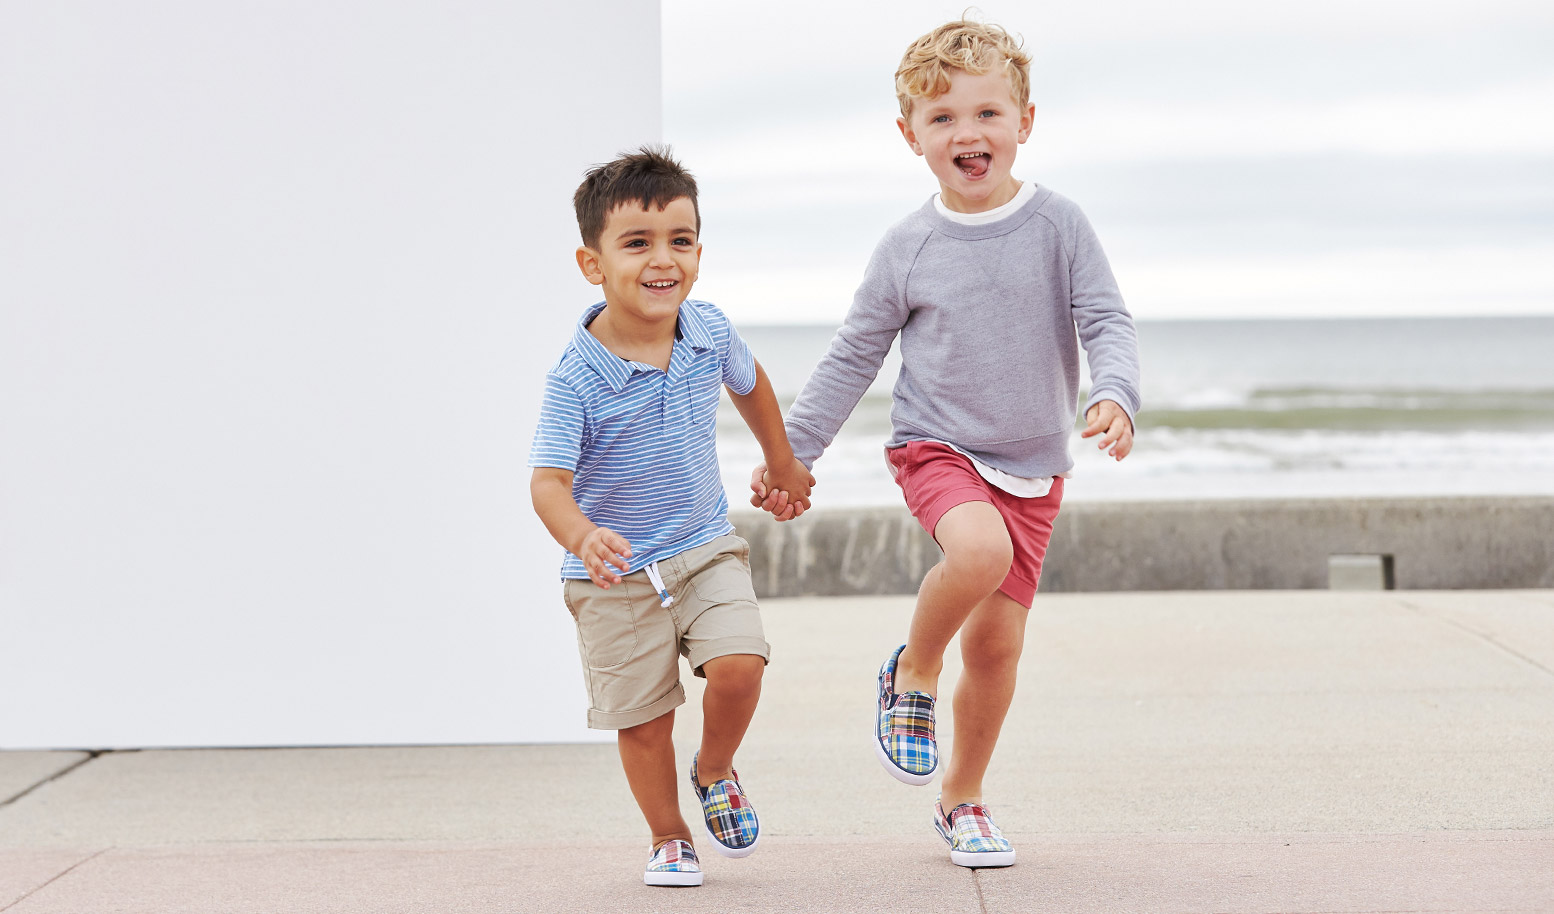 Two kids holding hands and running on a boardwalk in their Sperry loafers.